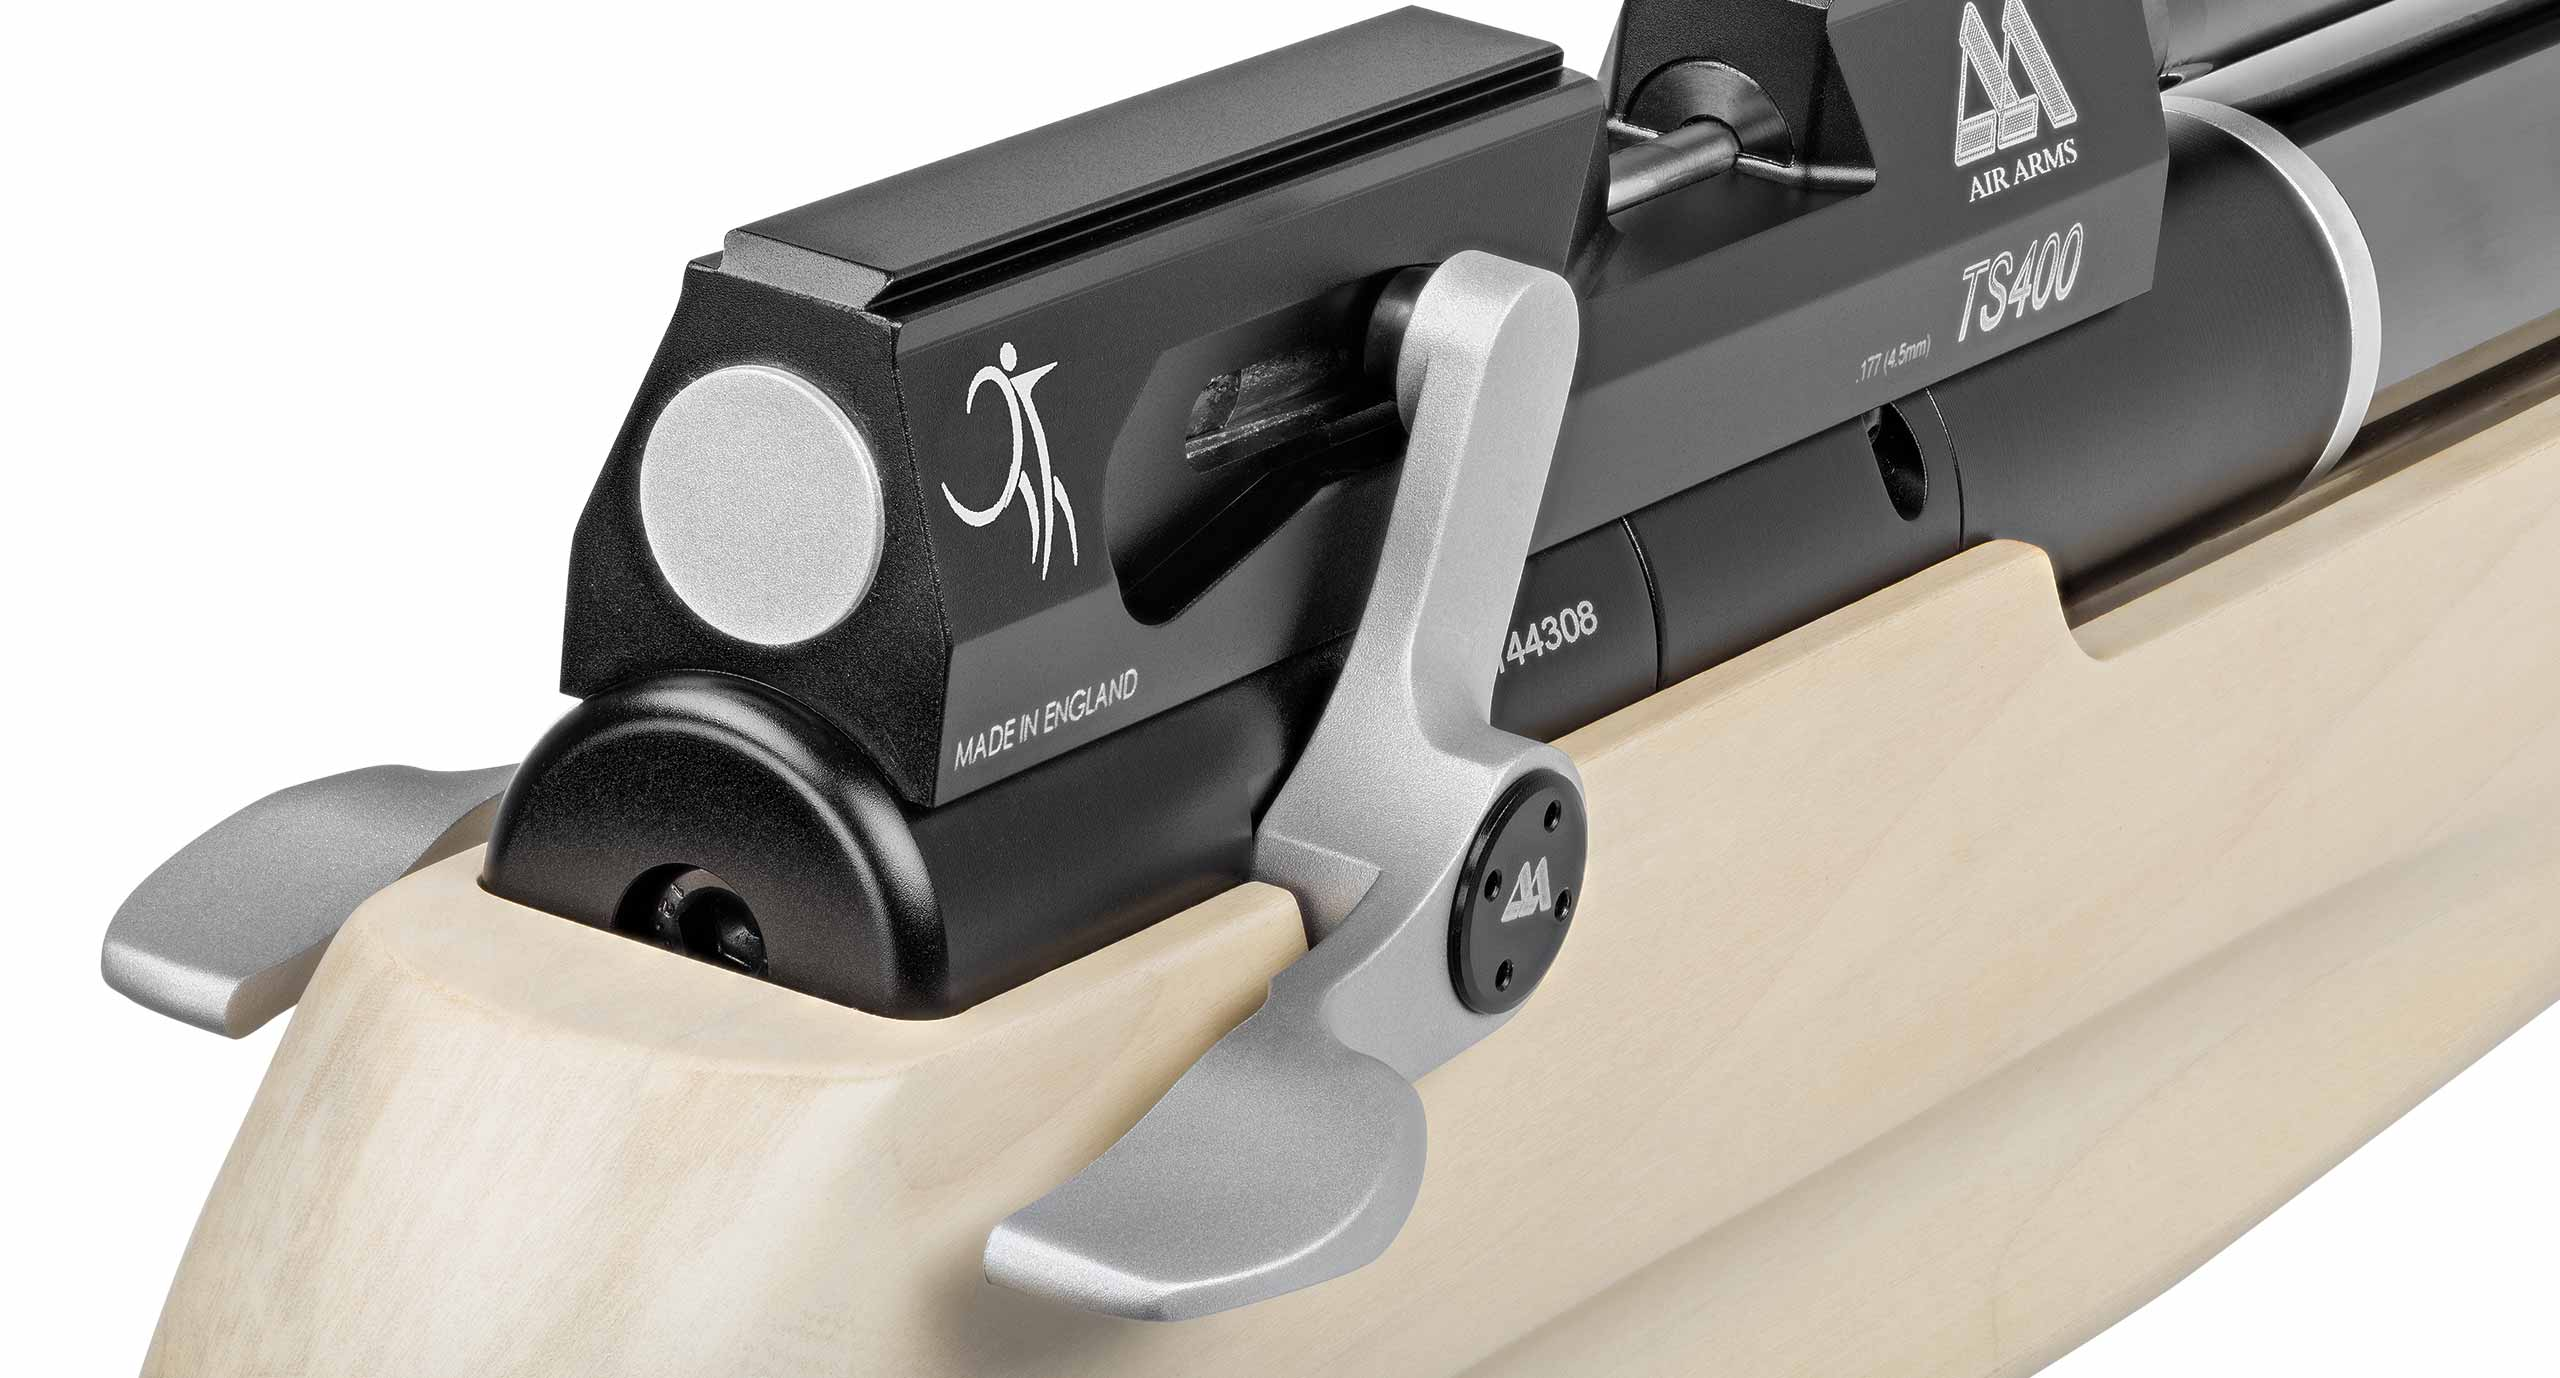 TS400 Target Spring Rifle Ambidextrous Lever